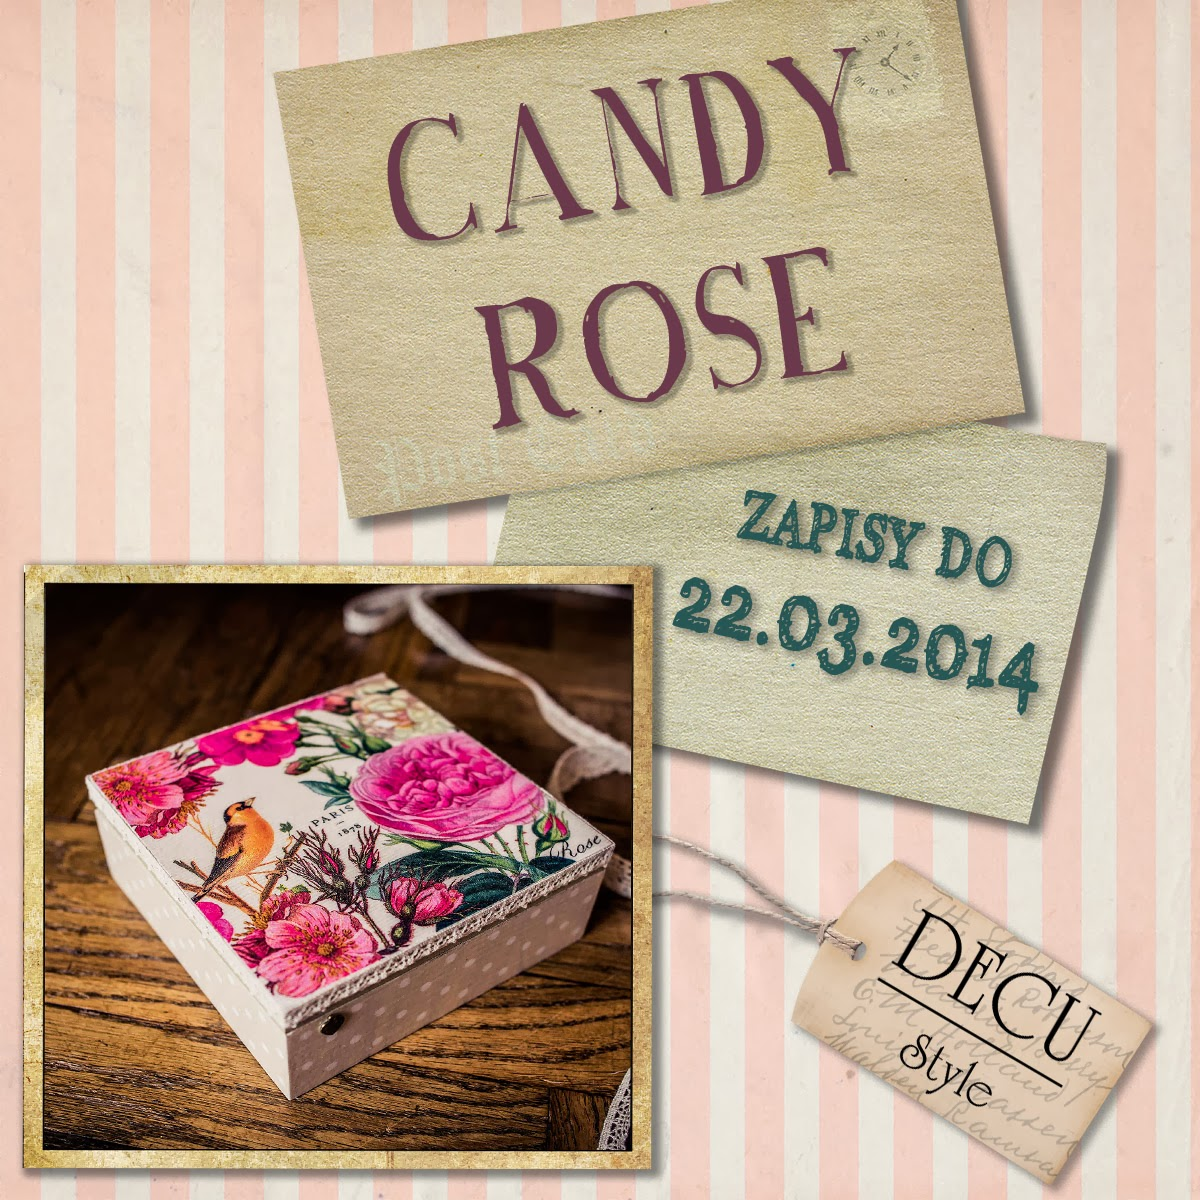 Candy do 22.03.2014